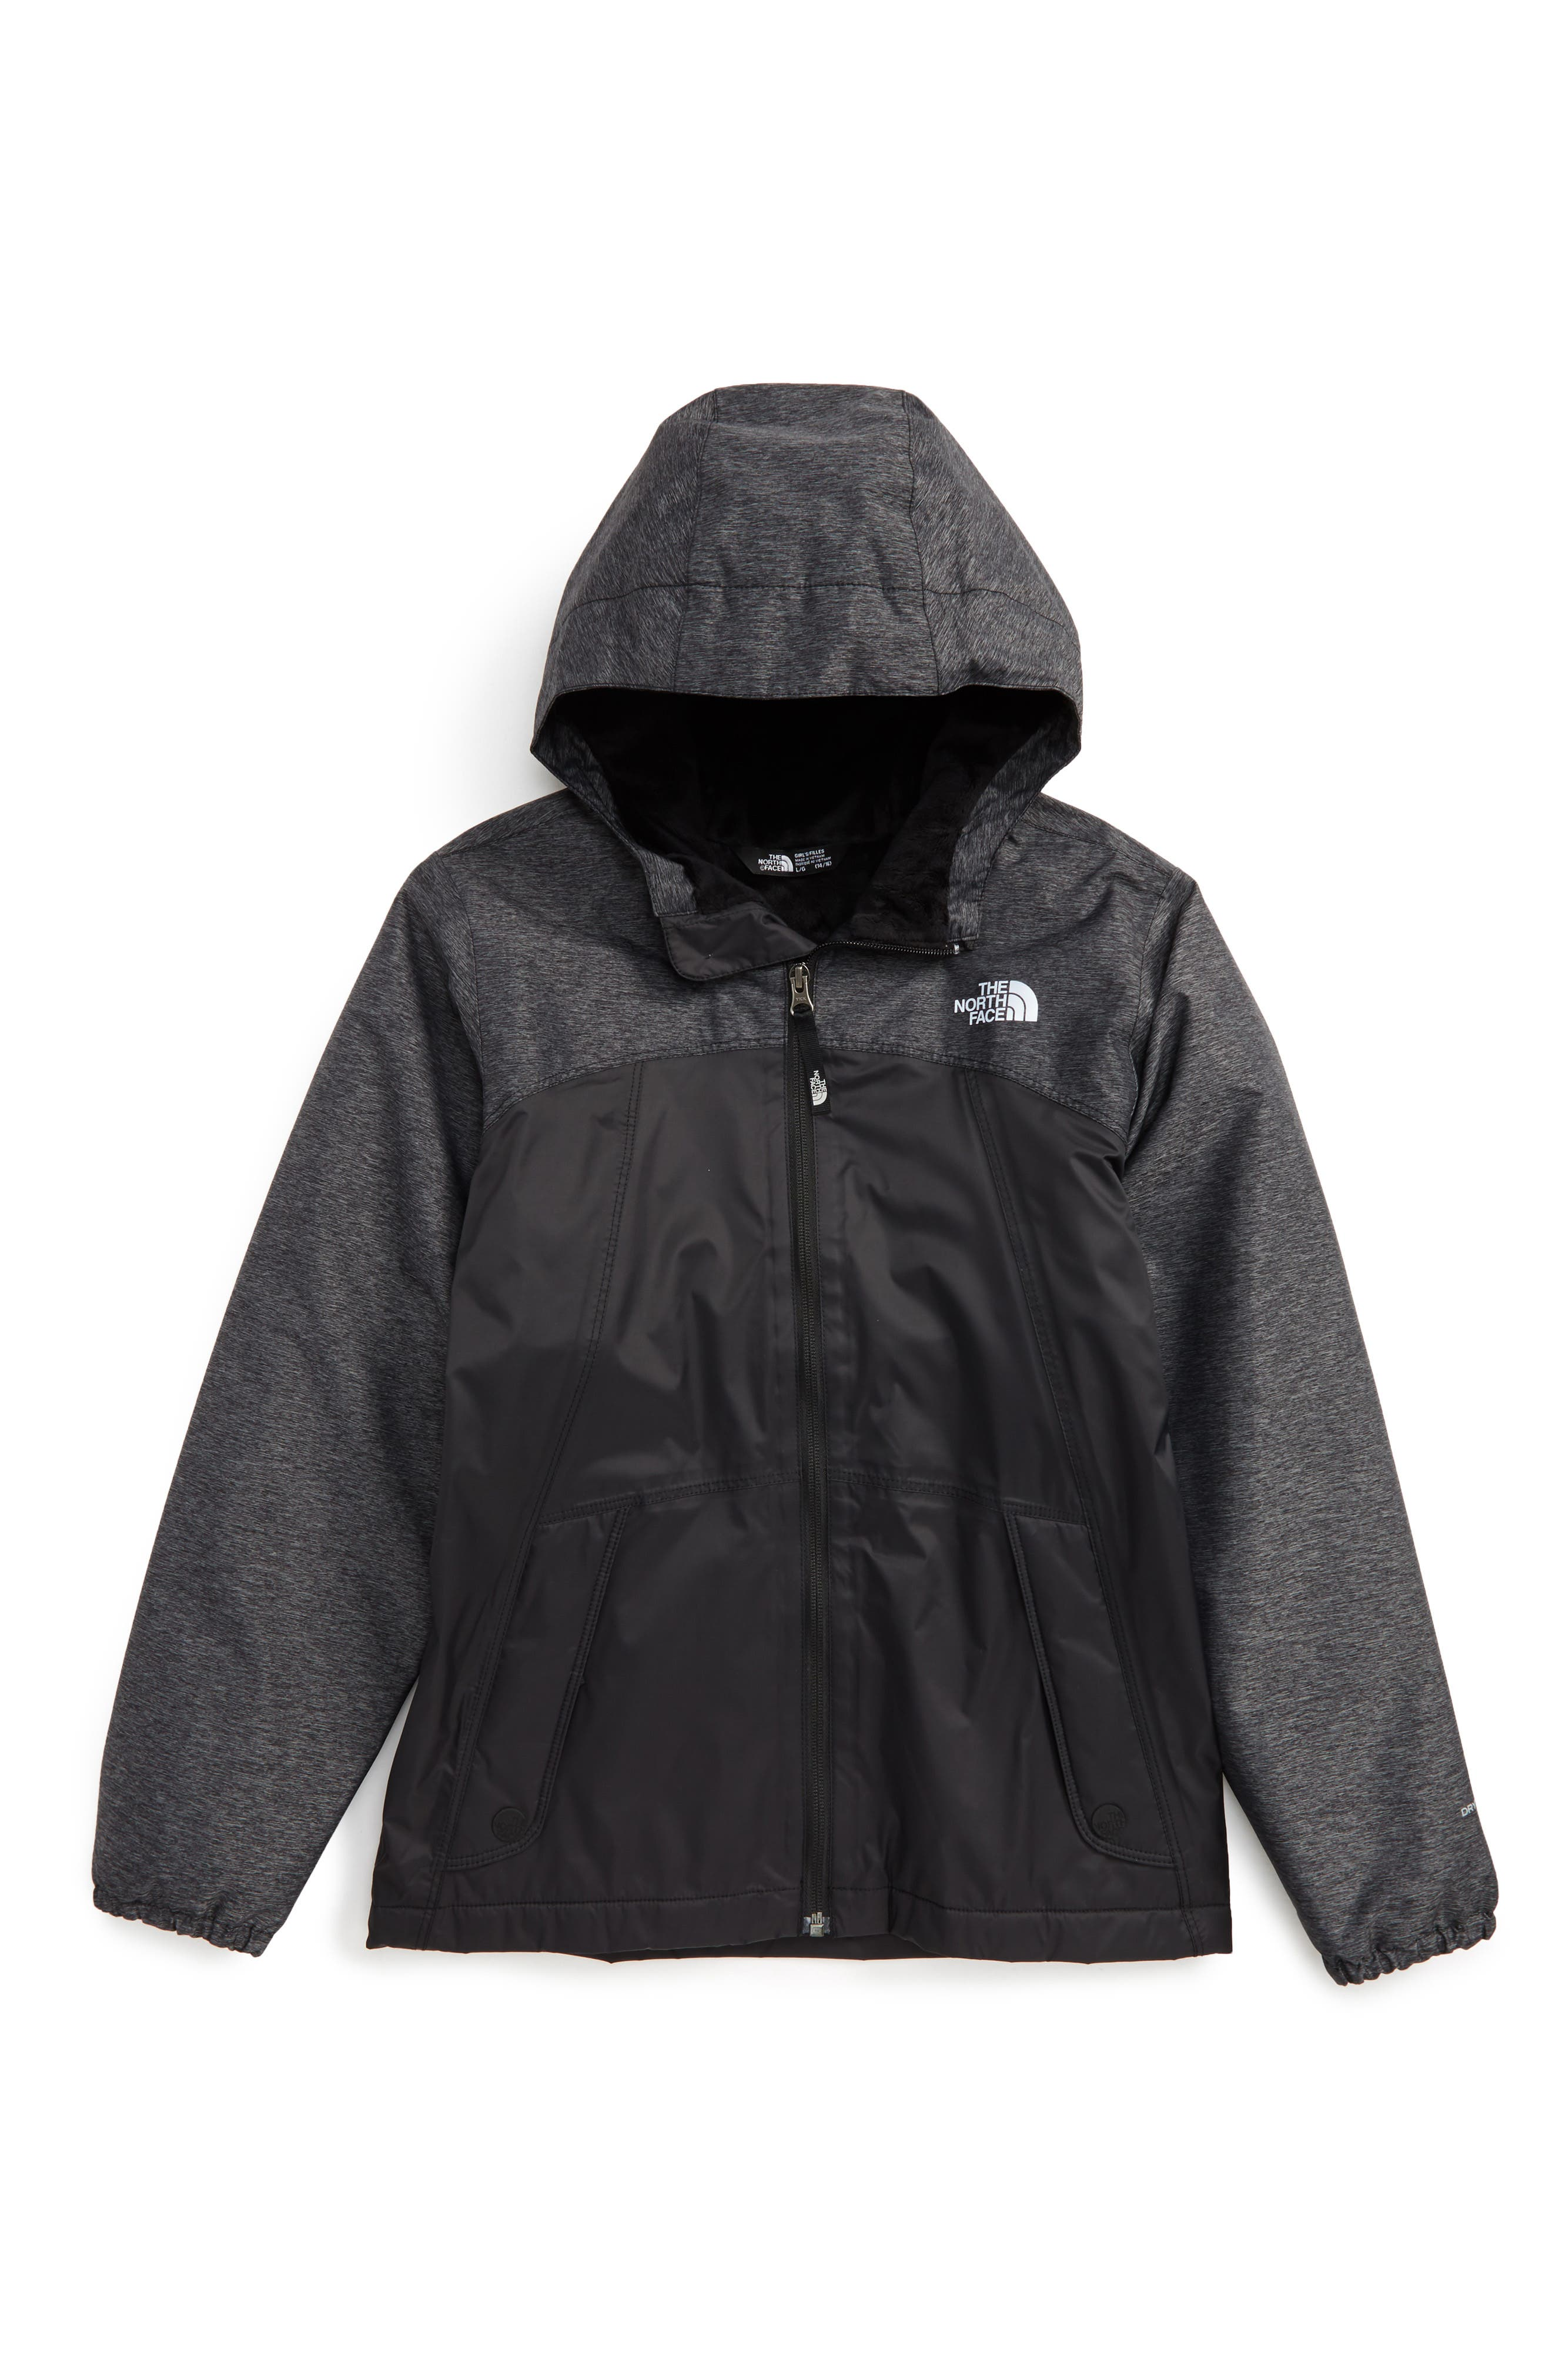 Warm Storm Hooded Waterproof Jacket,                             Main thumbnail 1, color,                             Tnf Black